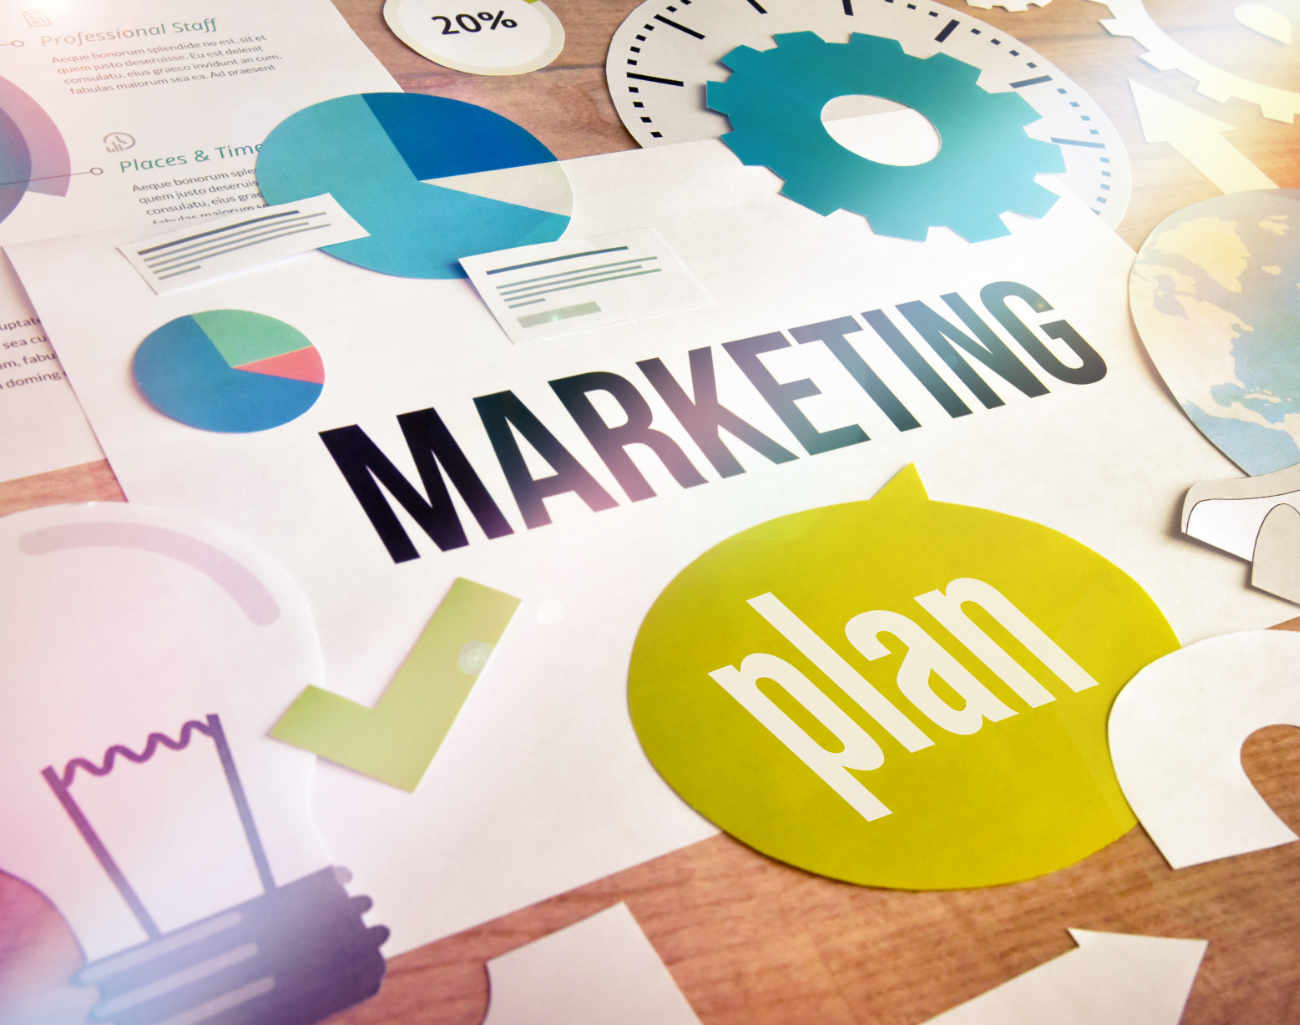 Content marketing plan collage image